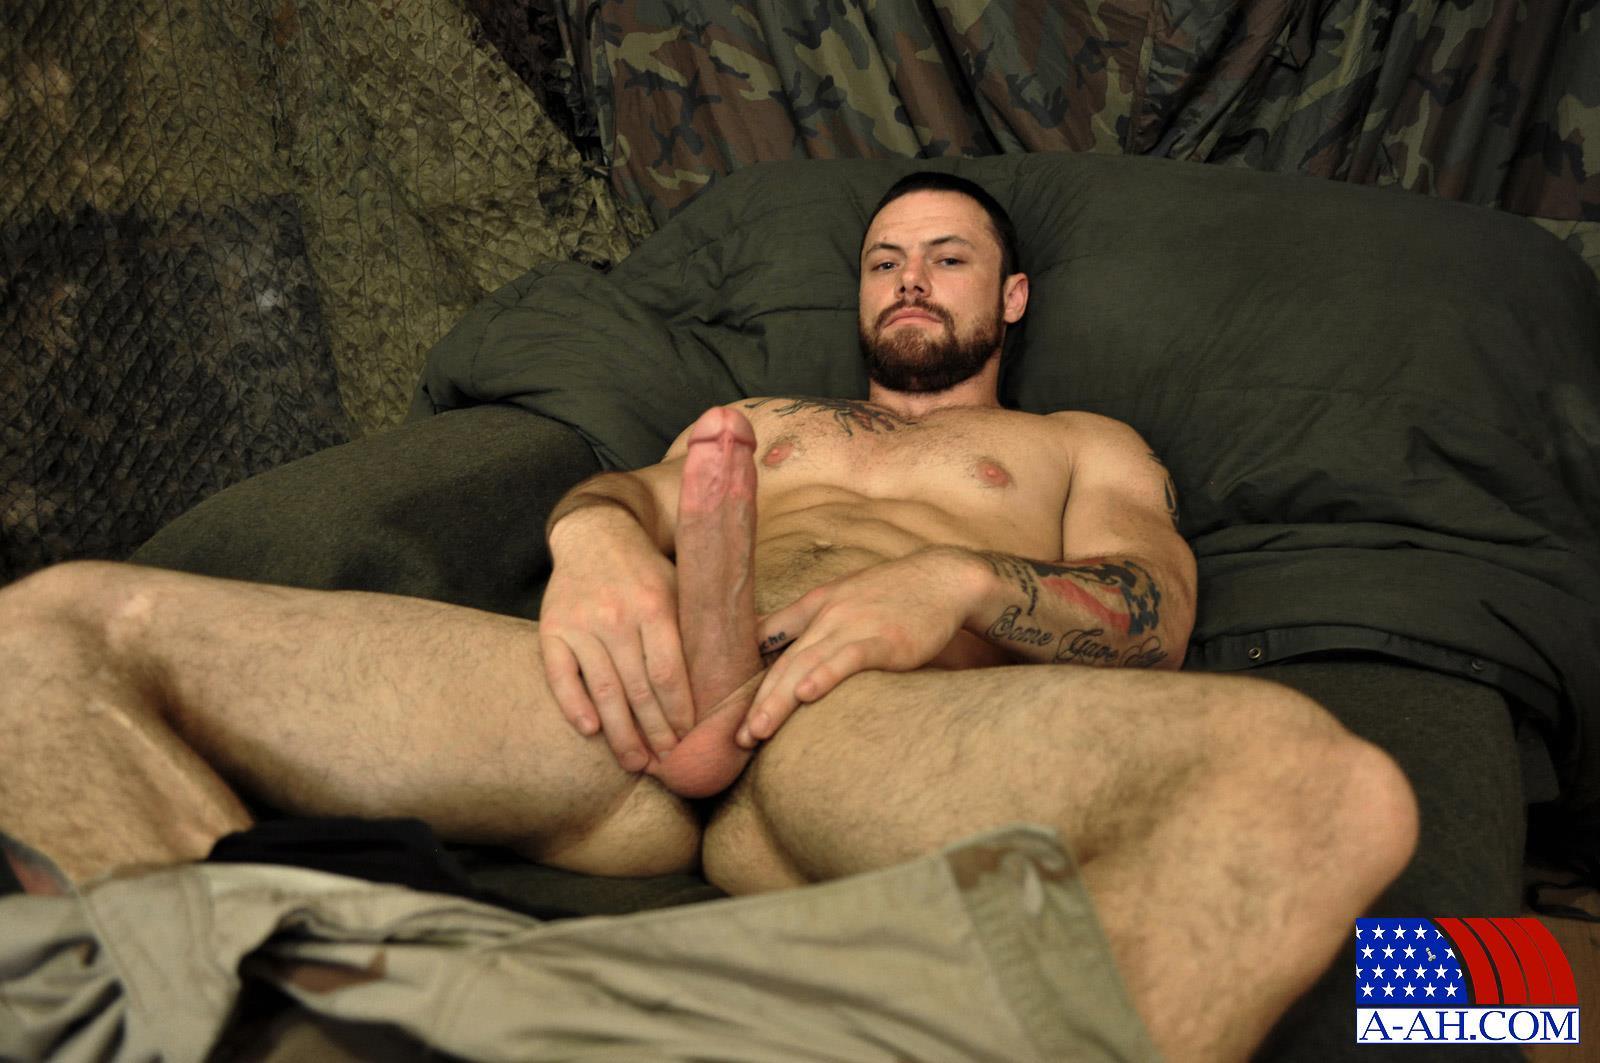 All American Heroes Sergeant Miles Army Guy Jerking Off Big Cock And Fingering Ass Amateur Gay Porn 08 Happy Veterans Day: Straight US Army Sergeant Jerks His Thick Cock